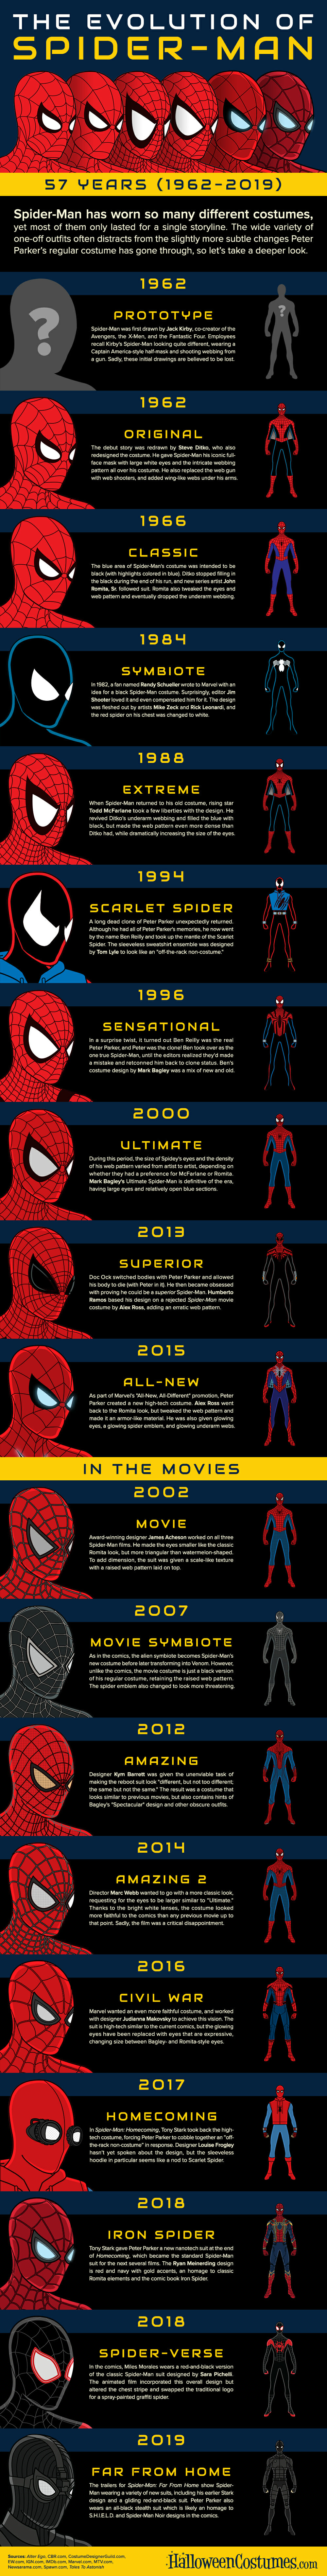 57 years of different Spider-man costumes